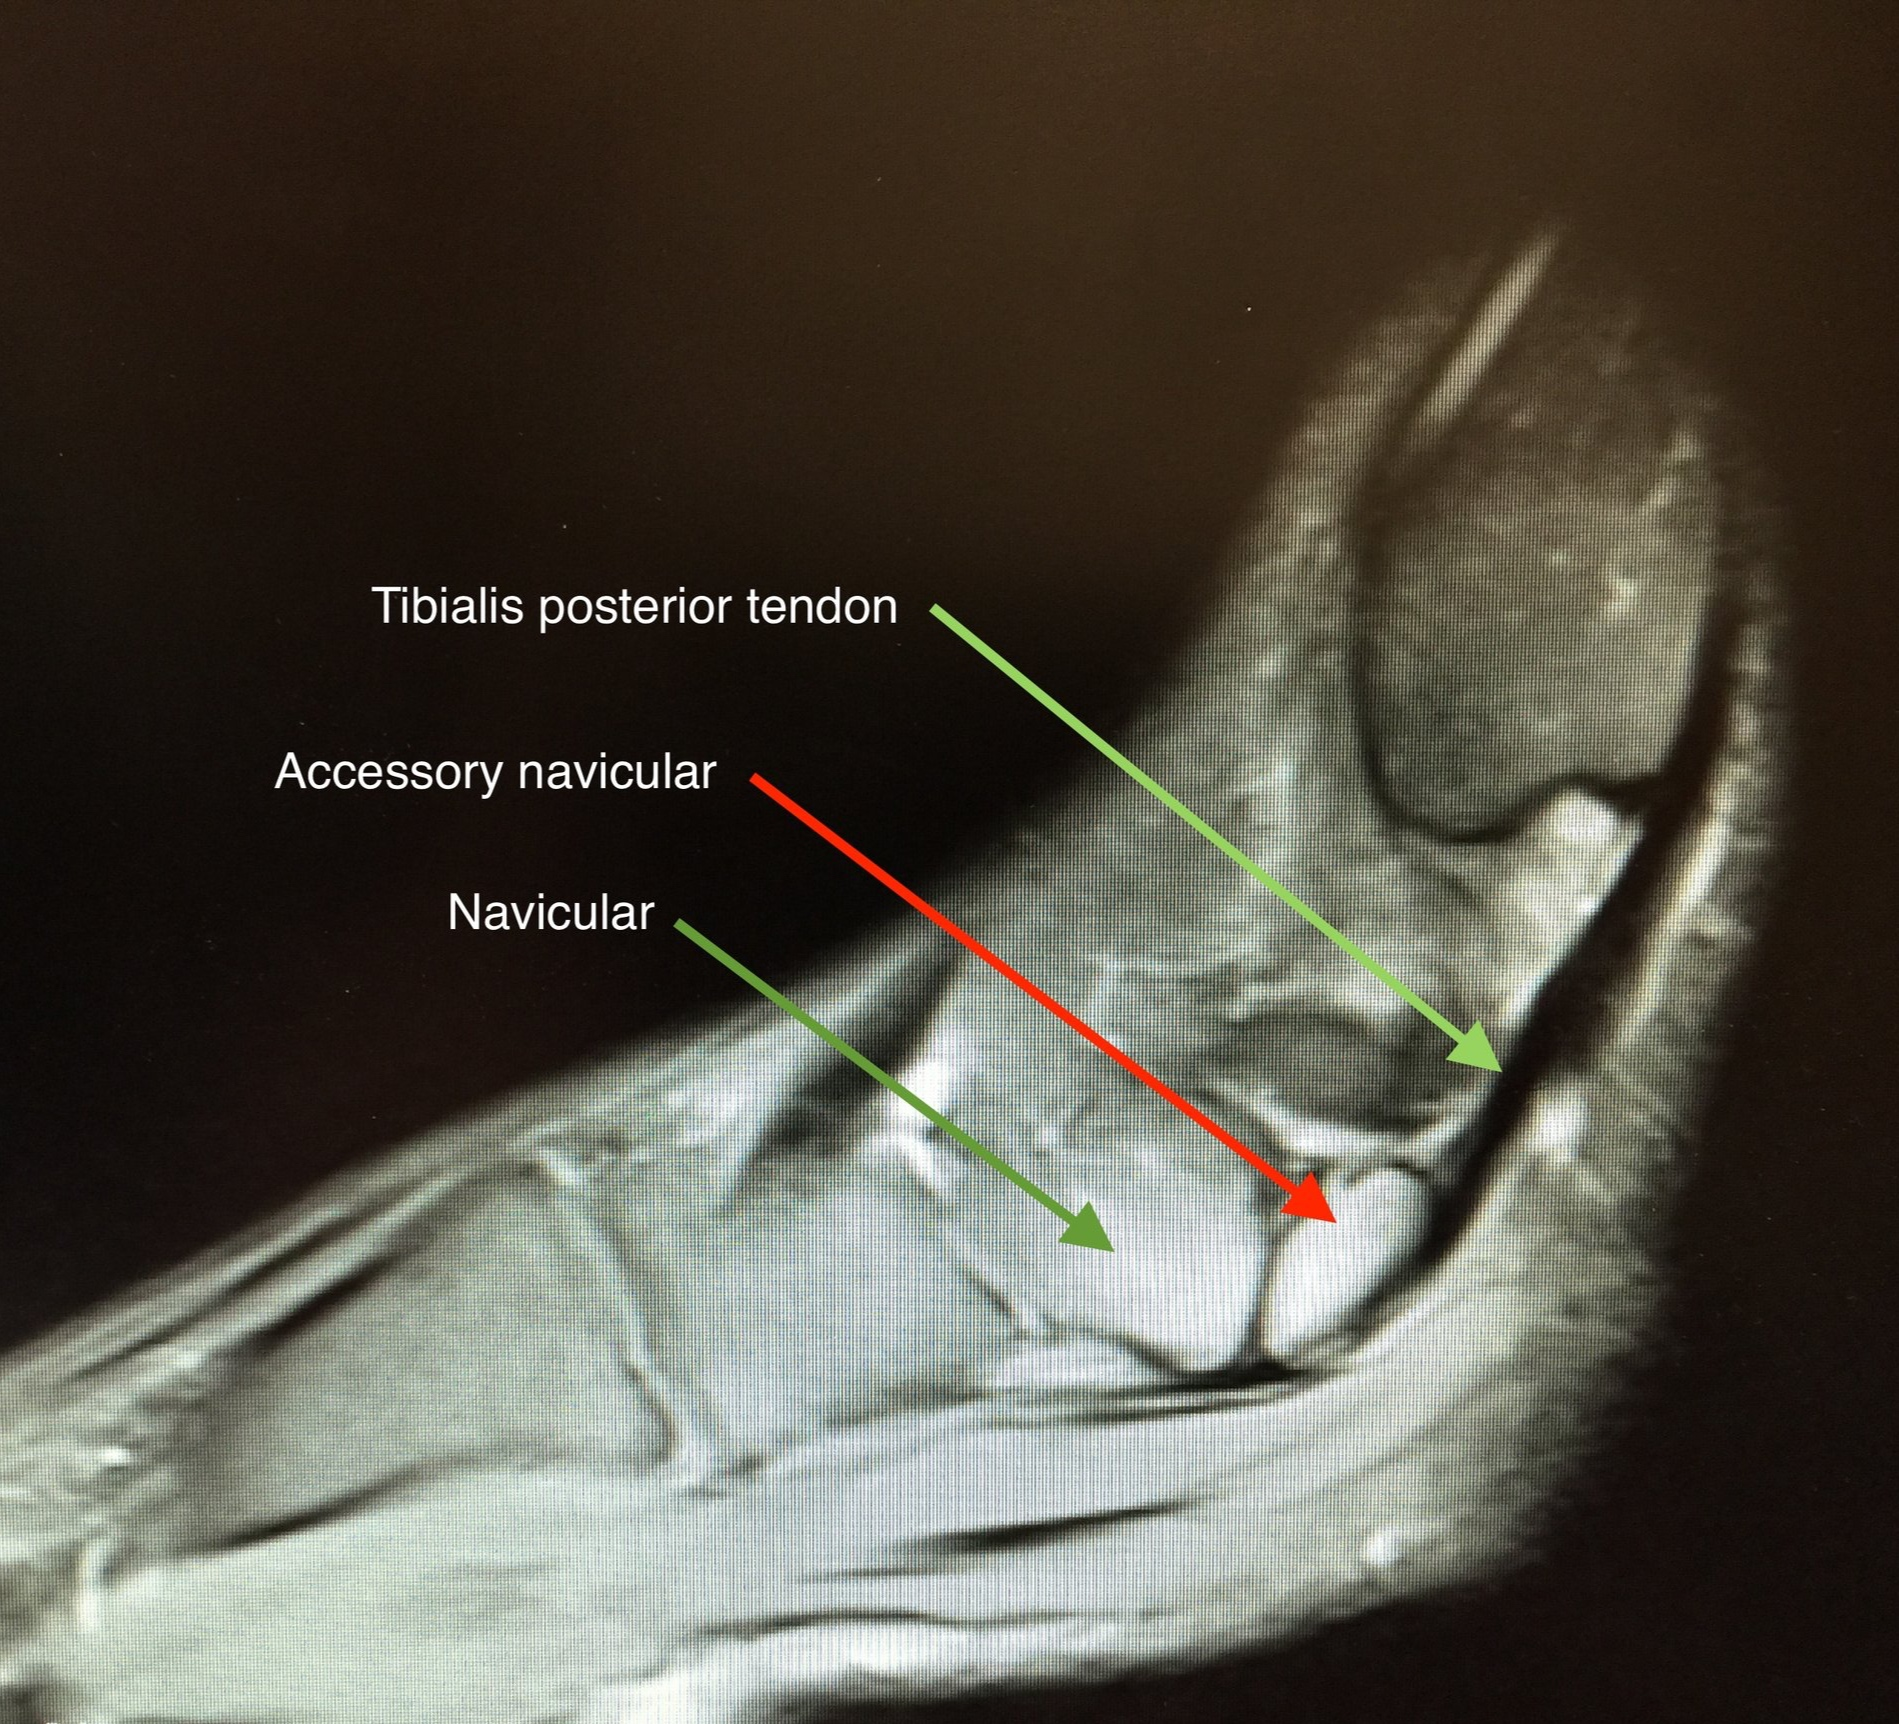 Accessory Navicular - Sometimes there is an extra piece of bone on the inside of the foot where the posterior tibialis tendon attaches to the navicular. This is quite common (8% of population). Although most patients do have any symptoms, some may experience pain in the area and may require specialist imaging. In itself it does not cause a flat foot. Surgery may sometimes be required if symptoms persist and generally involves removal or re-attachment of the extra bone.